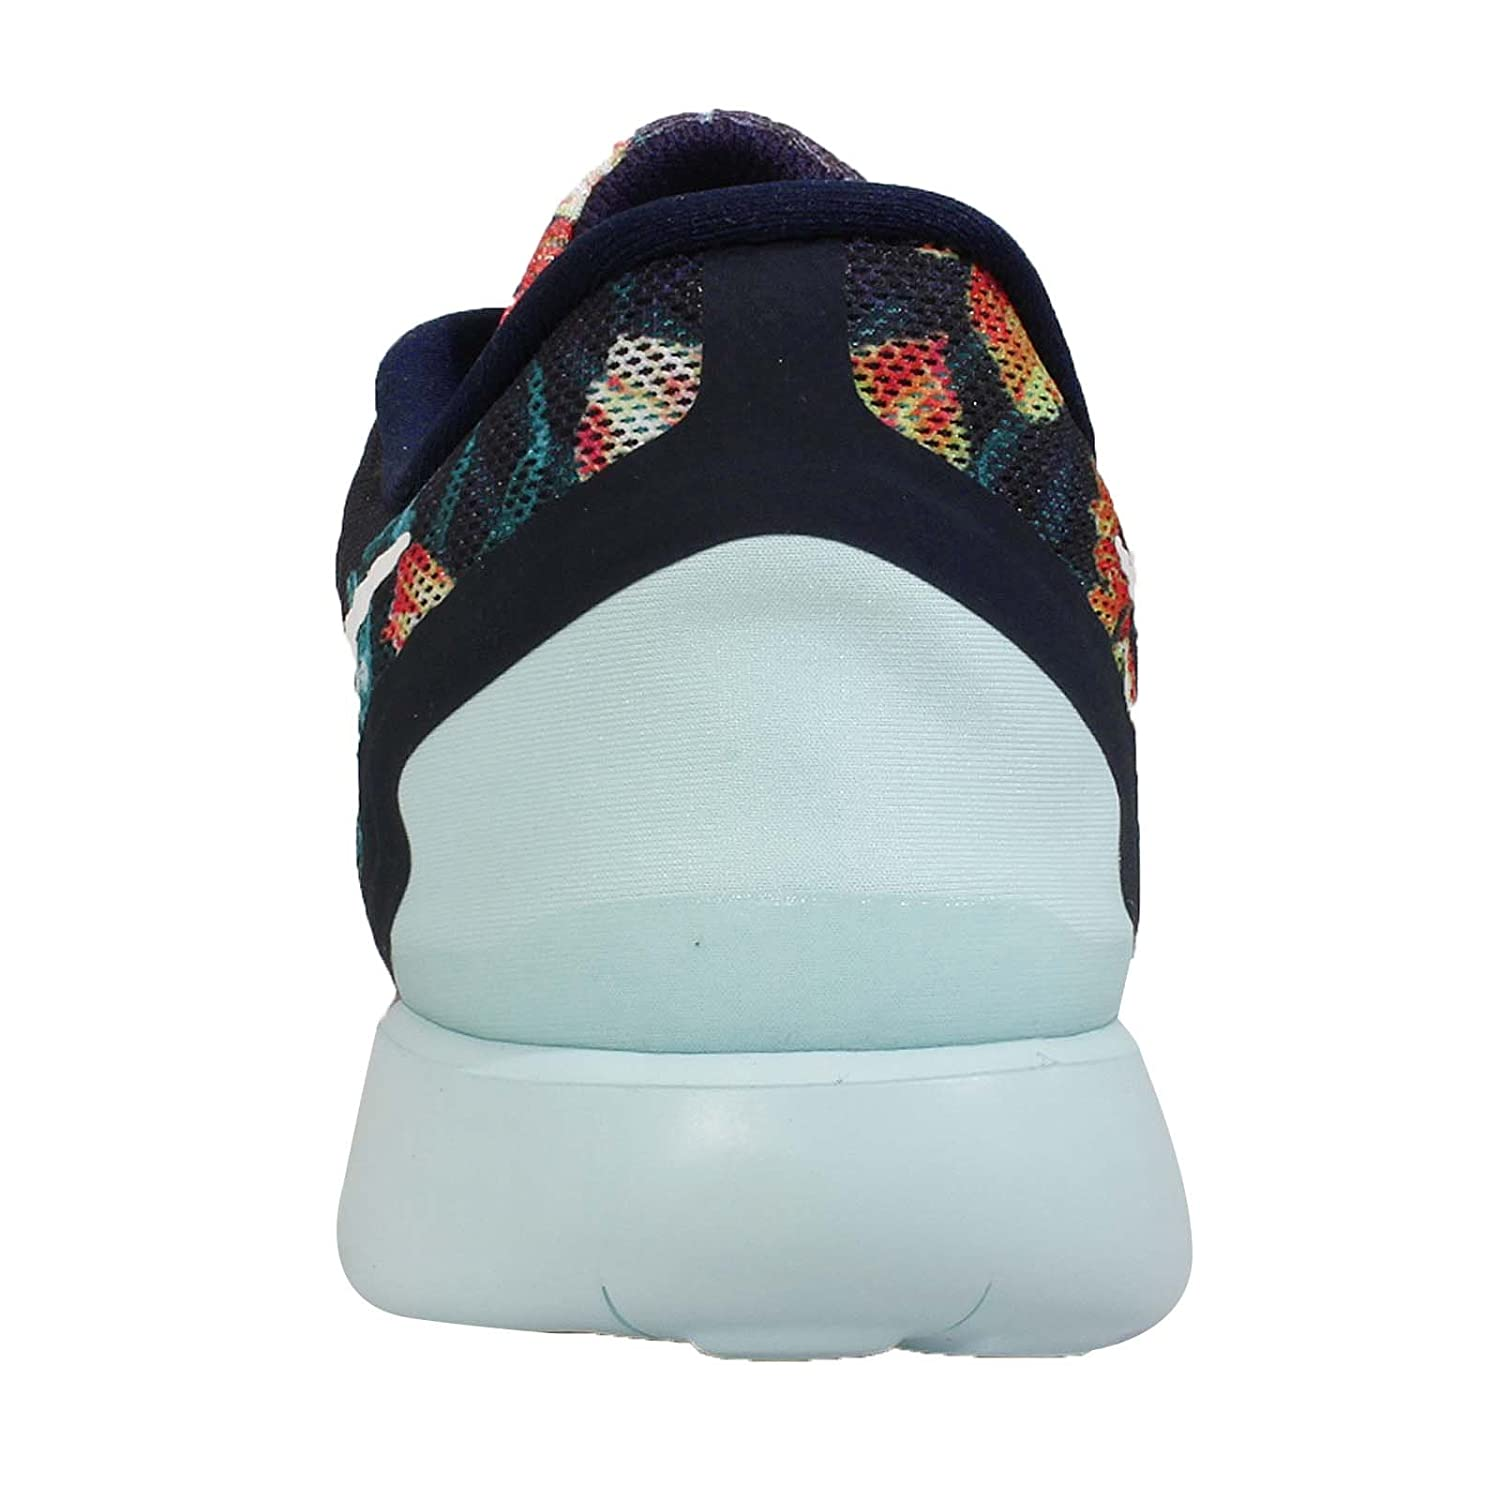 6a199ff2494b ... sale amazon nike mens free 5.0 photosynthesis pack running shoes floral  print 9.5 road running c7bd6